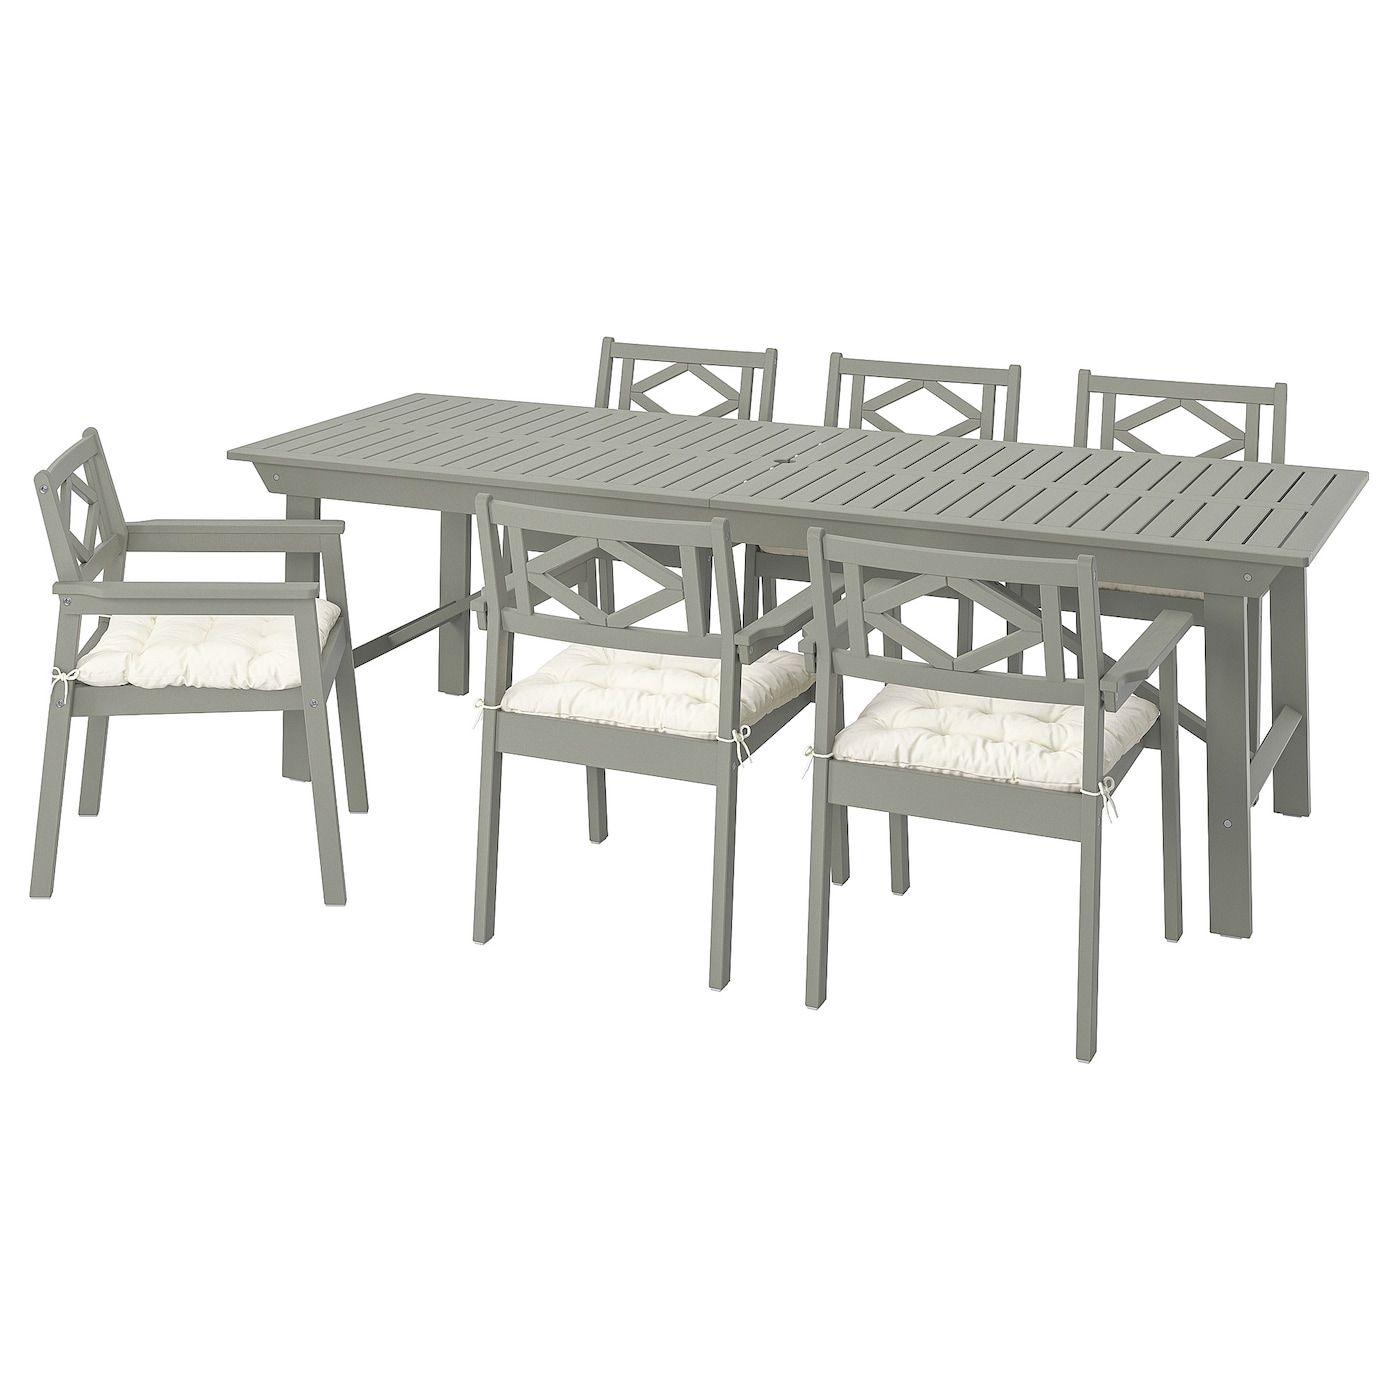 Bondholmen Table 6 Armchairs Outdoor Gray Stained Kuddarna